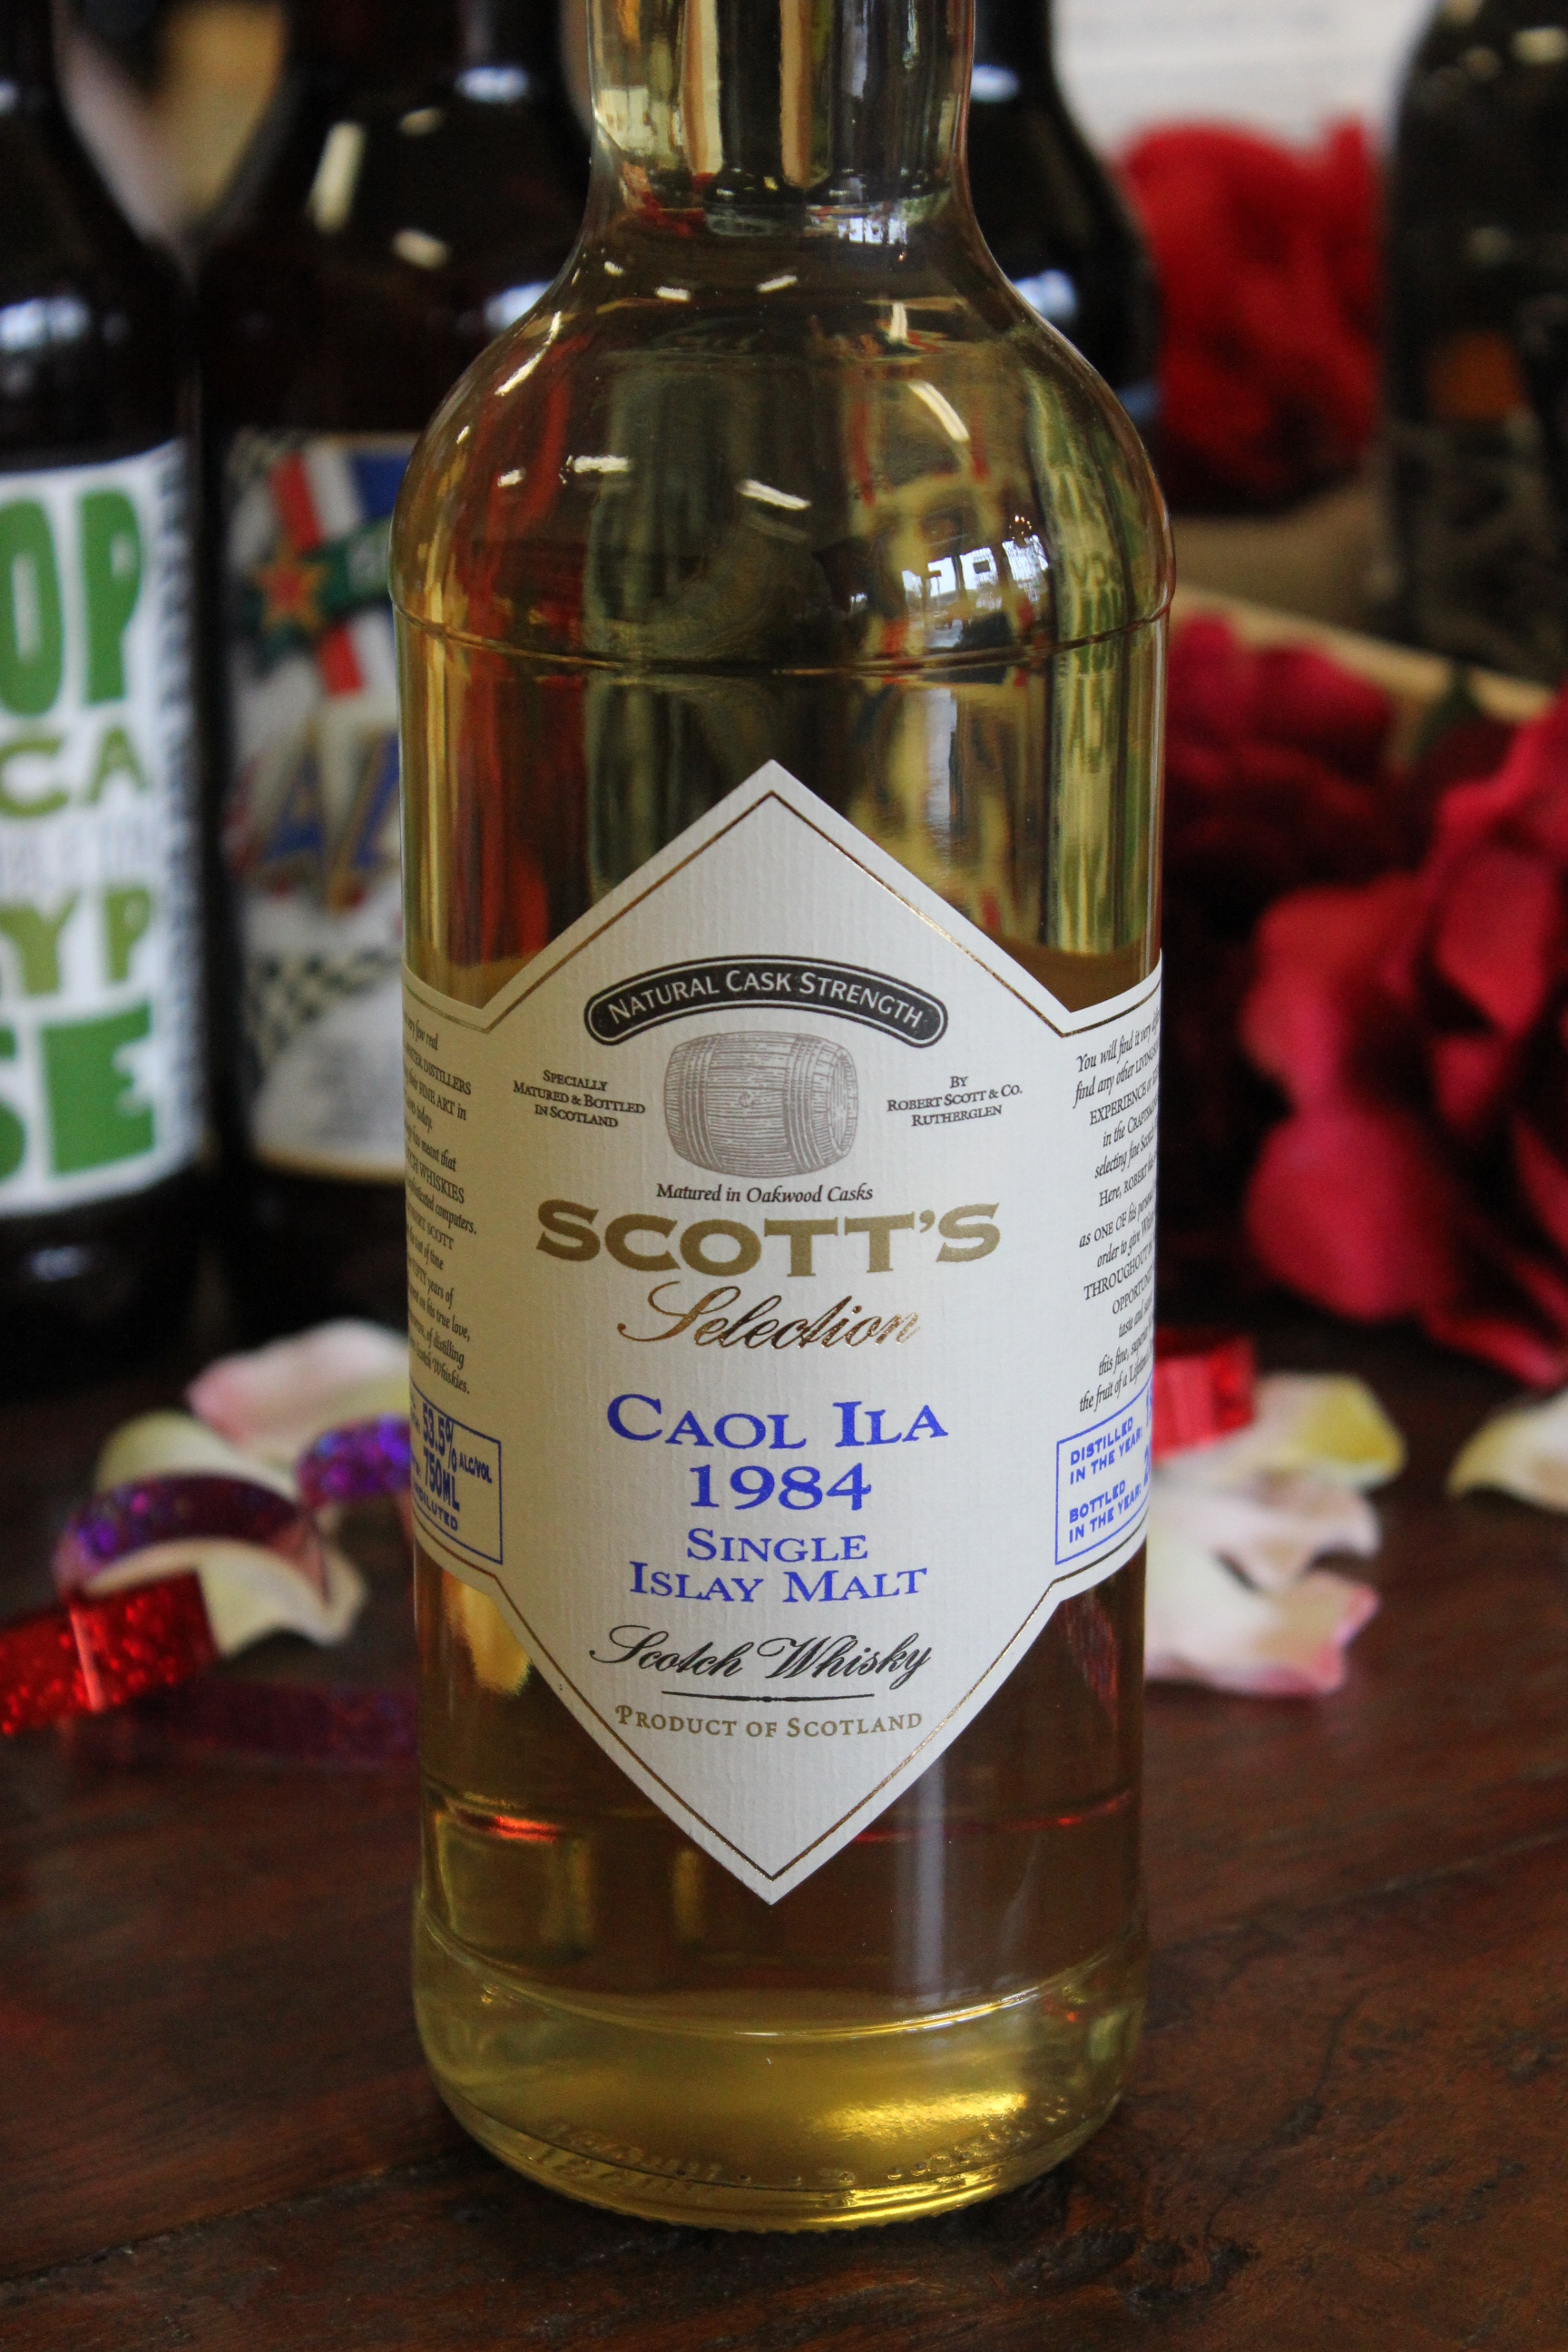 Caol Ila Vintage 1984 53.5% Scotch Whisky Bottled by Scott's